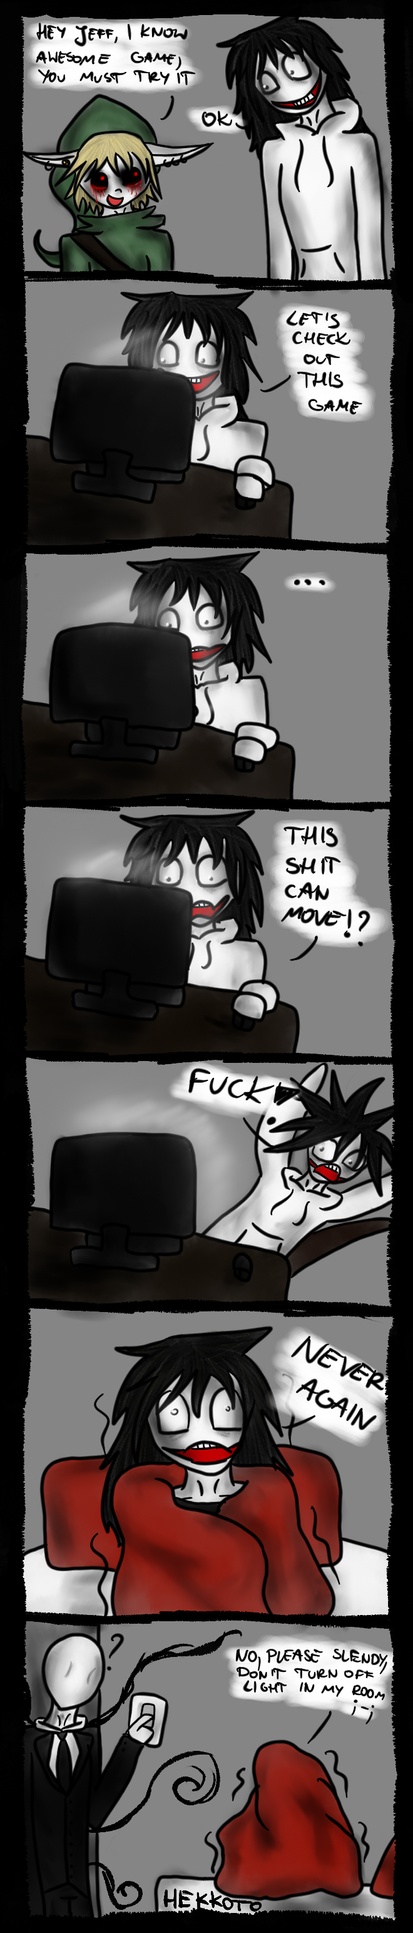 Jeff playing five nights at freddy s part 1 by hekkoto on deviantart